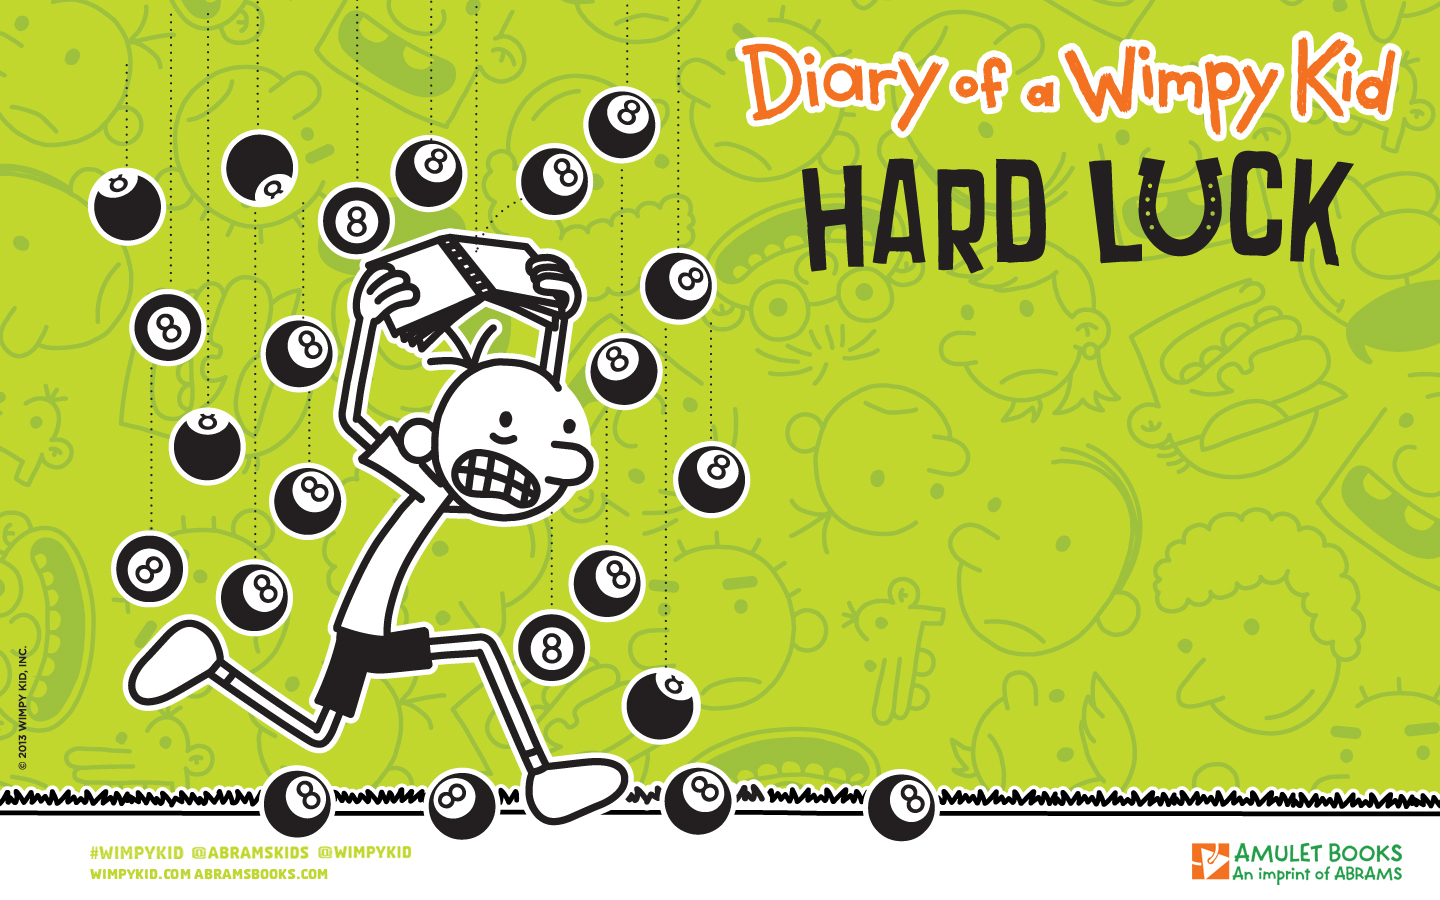 Image wimpy wallpaper 1440x904g diary of a wimpy kid wiki wimpy wallpaper 1440x904g solutioingenieria Images